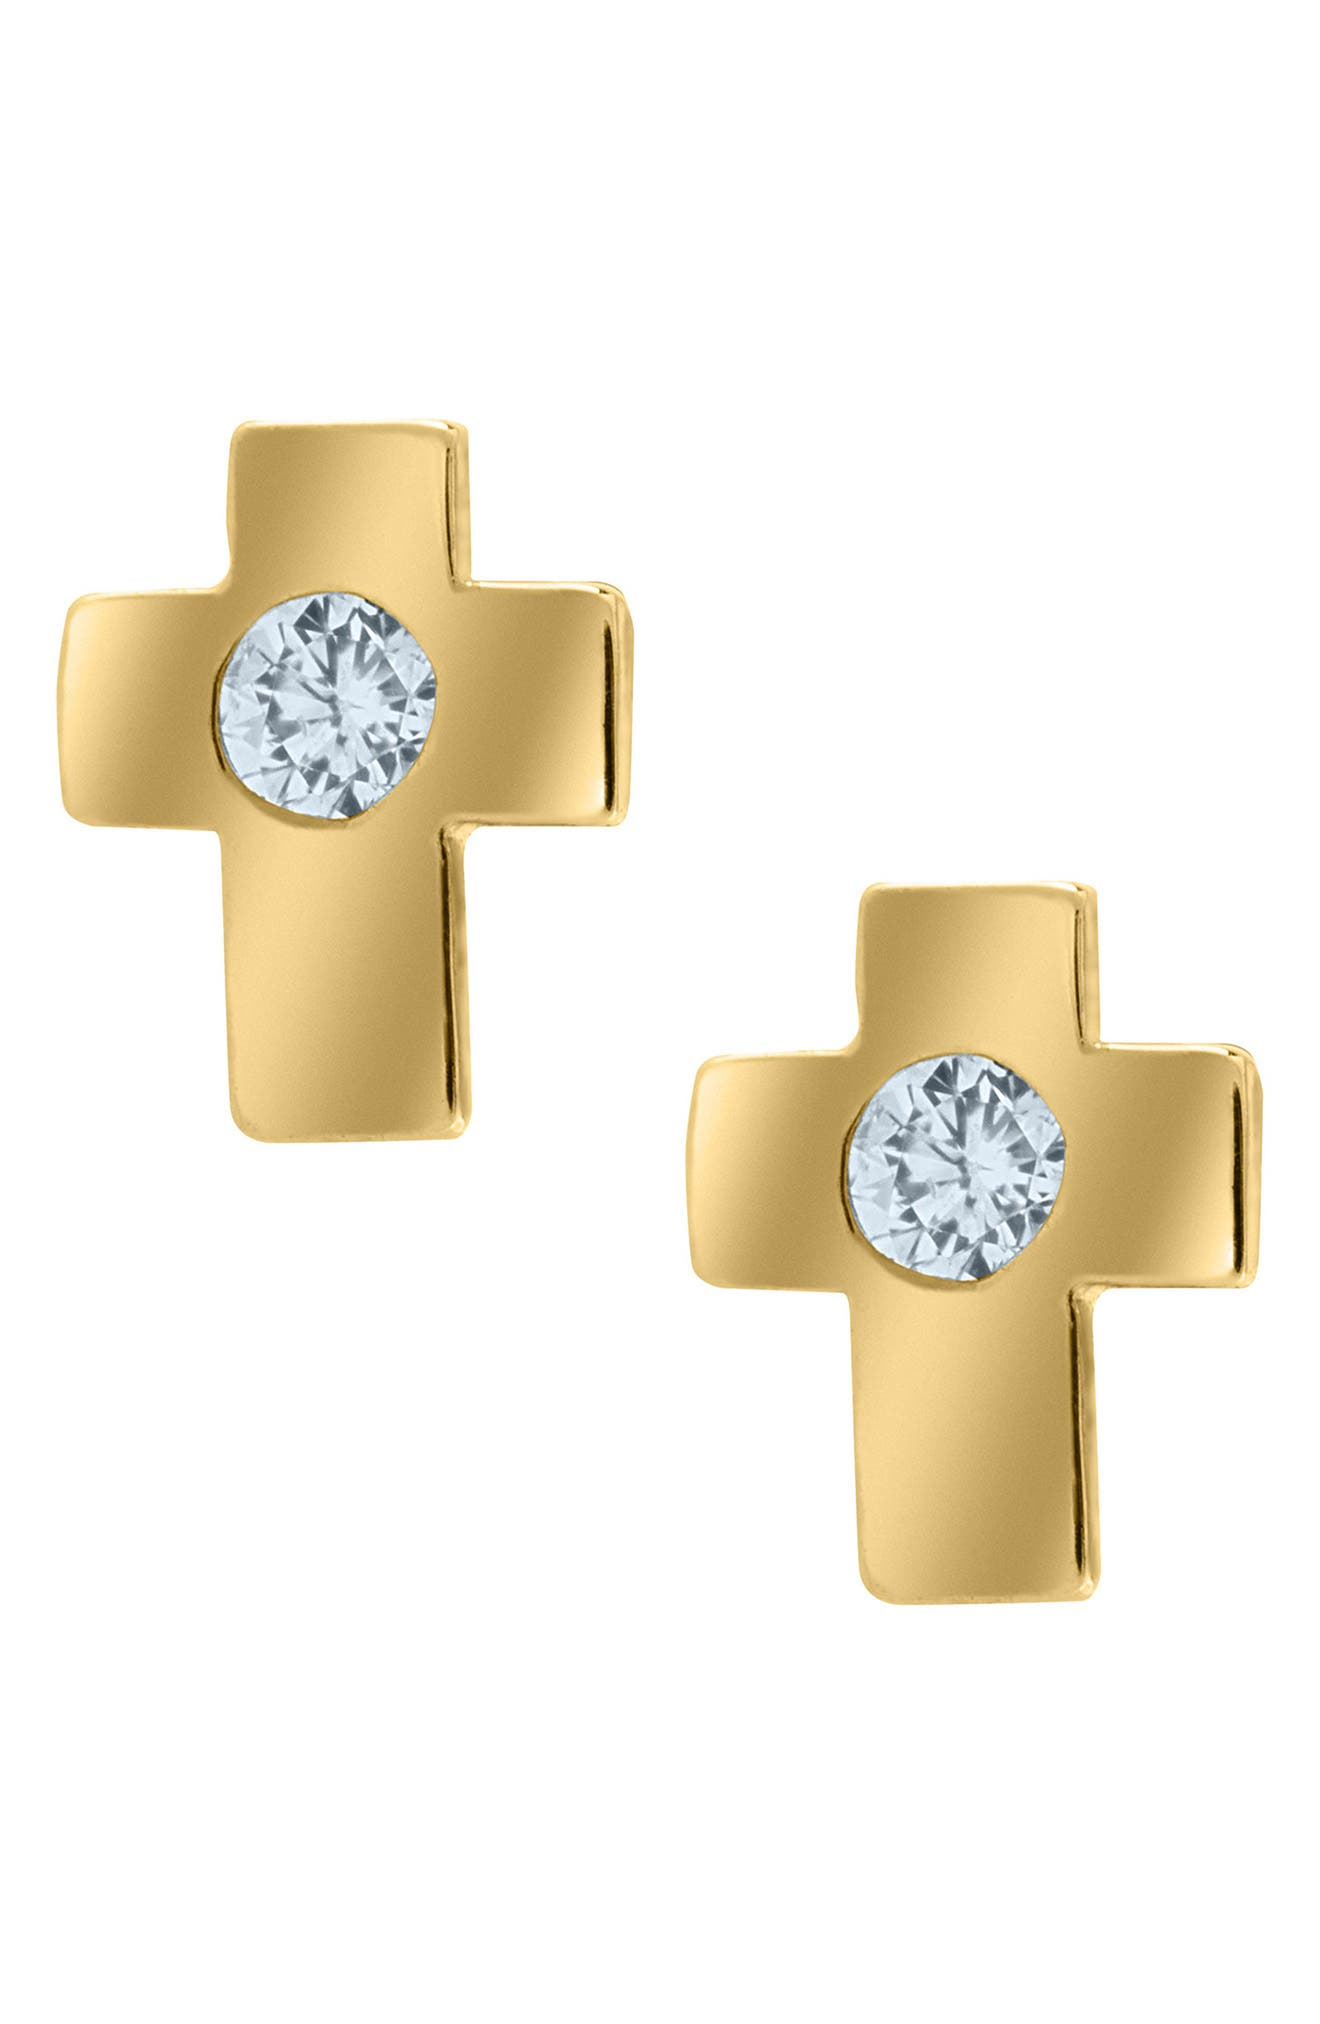 14k Gold & Cubic Zirconia Cross Earrings,                             Main thumbnail 1, color,                             GOLD